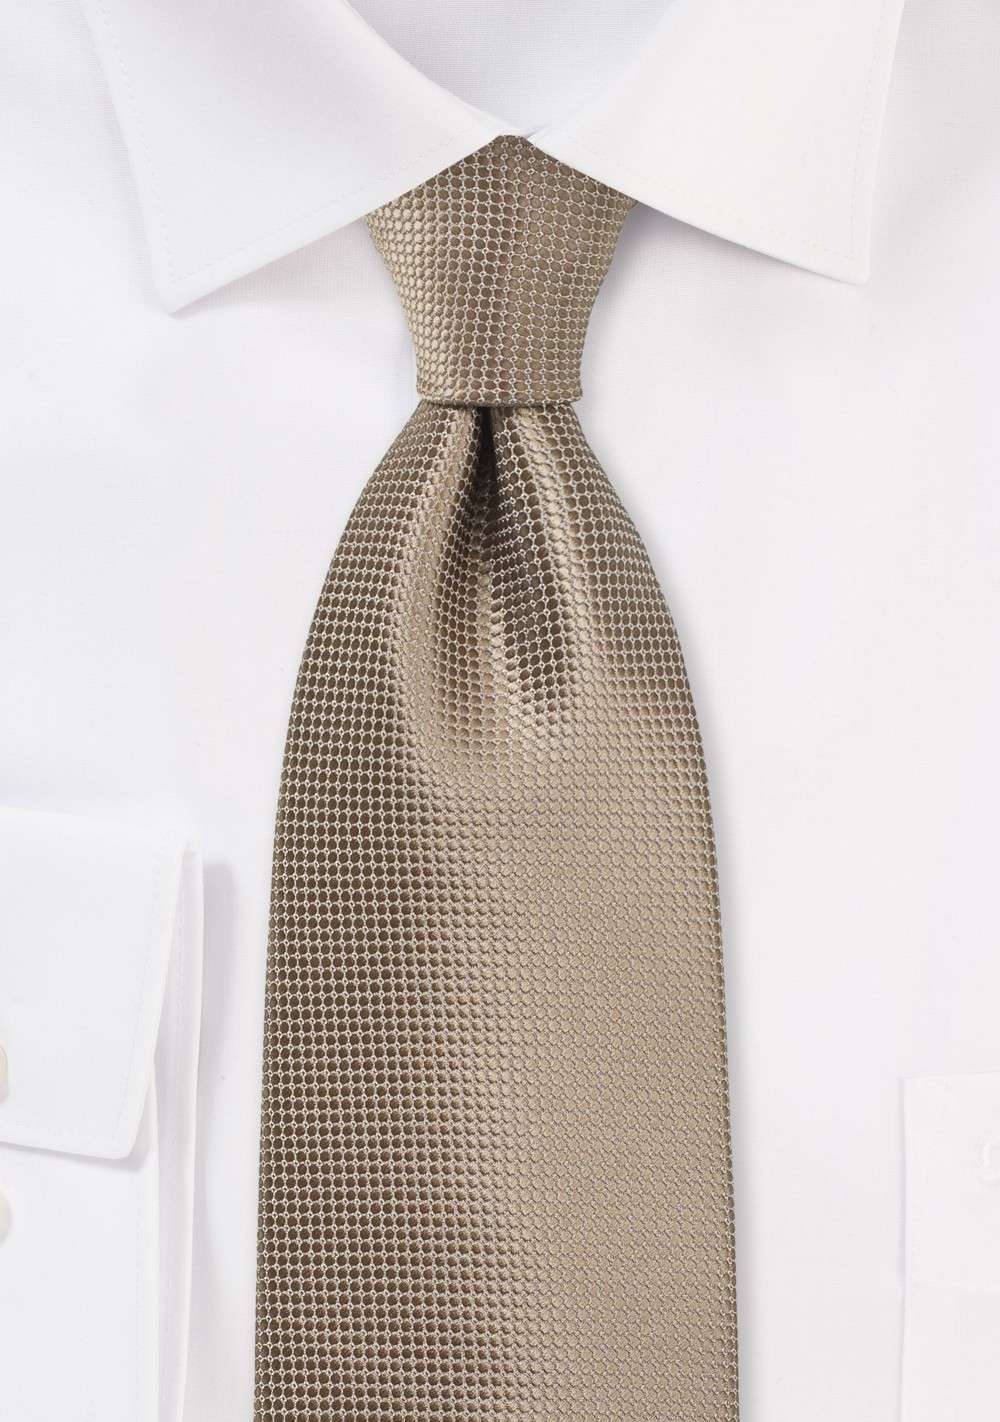 XL Sized Tie in Taupe